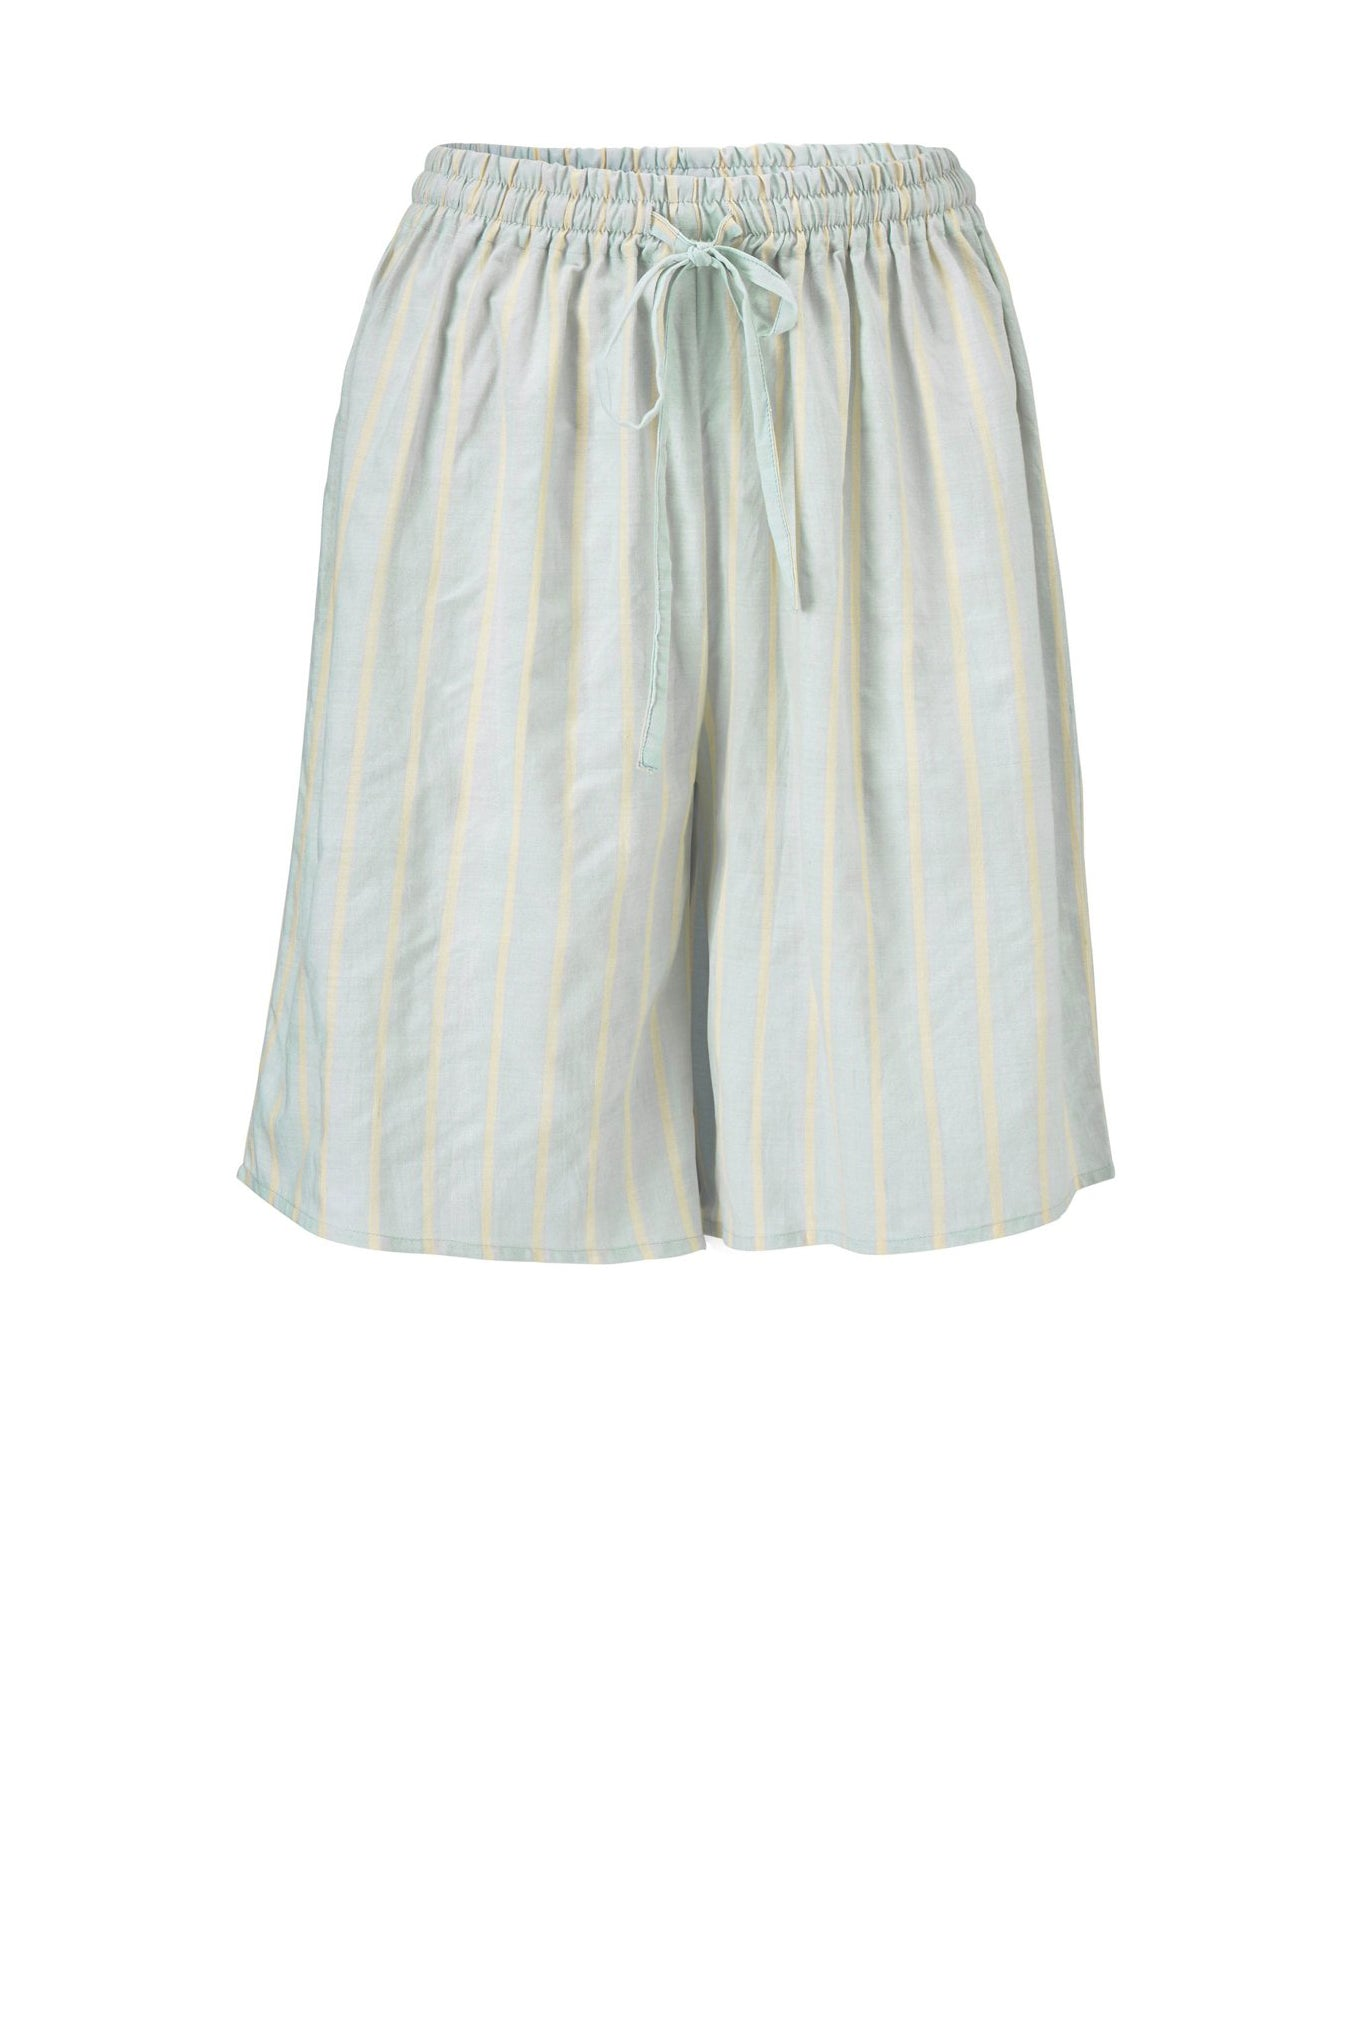 Bea Shorts - Blue/Yellow Stripe - Silk/Cotton